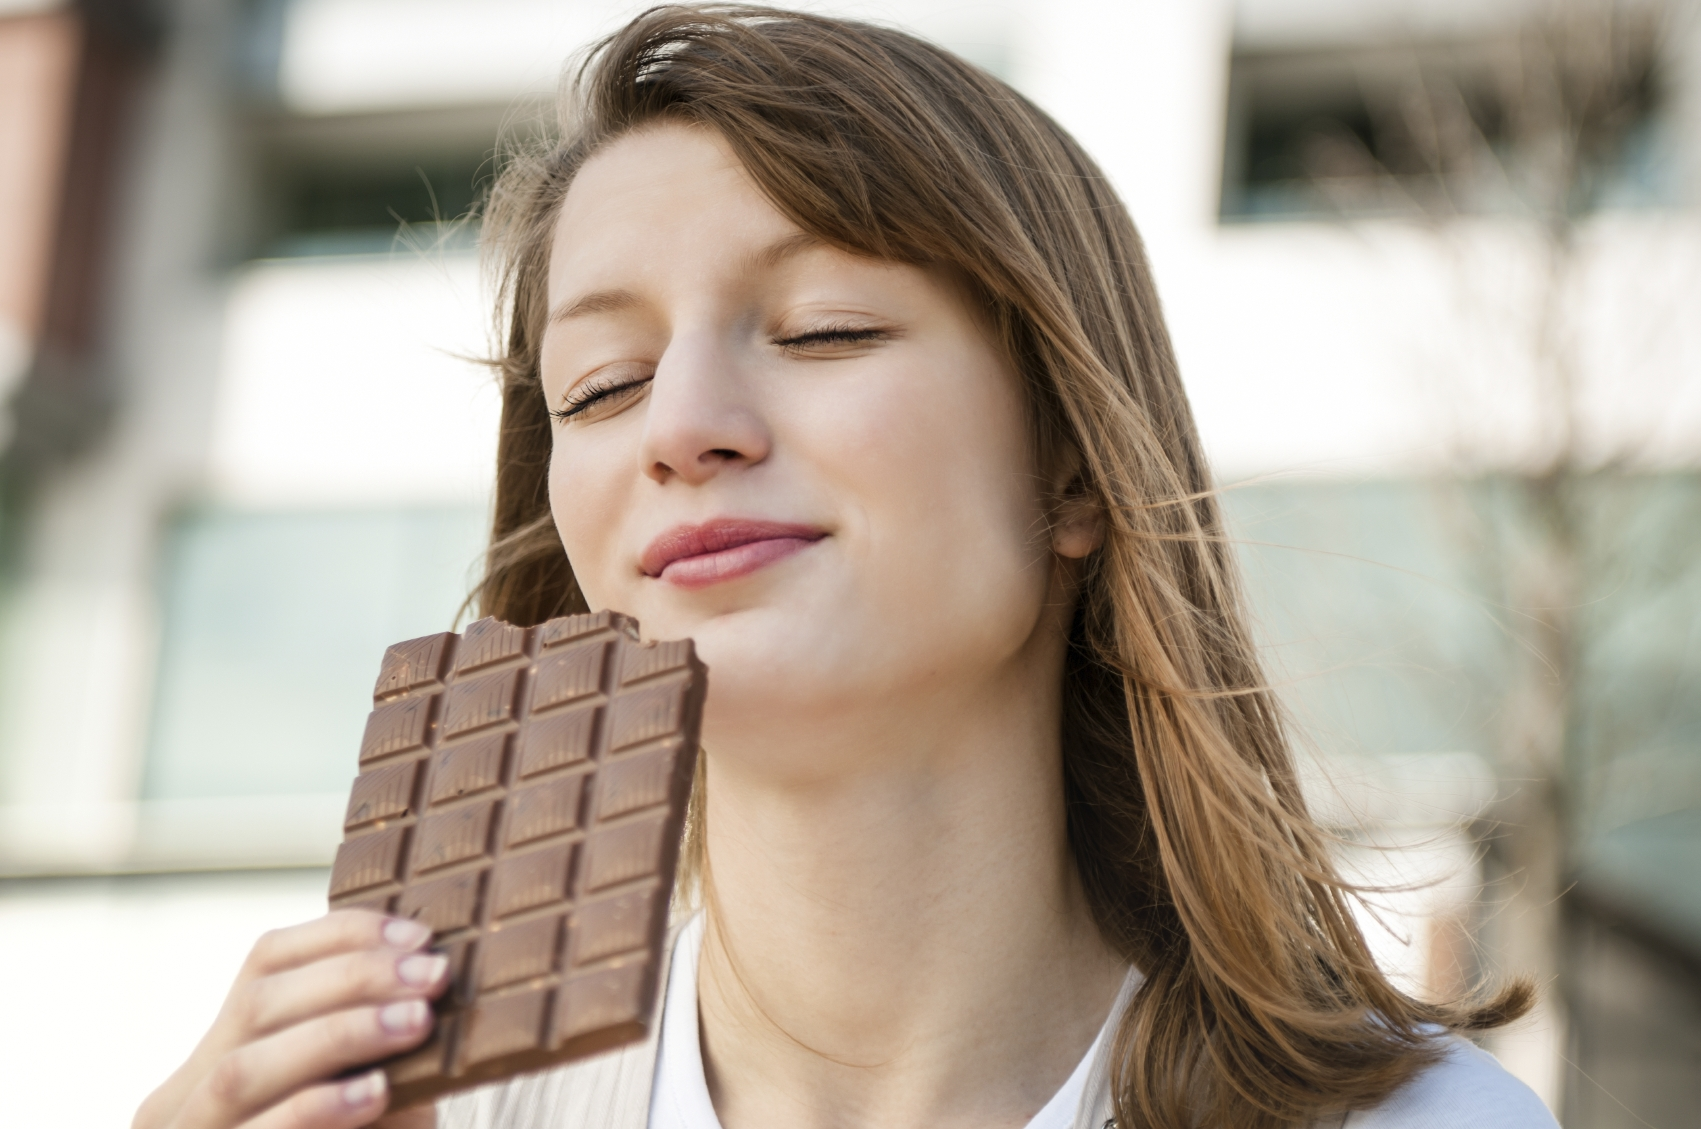 Portrait of young beautiful woman eating chocolate - lifestyle outdoor image